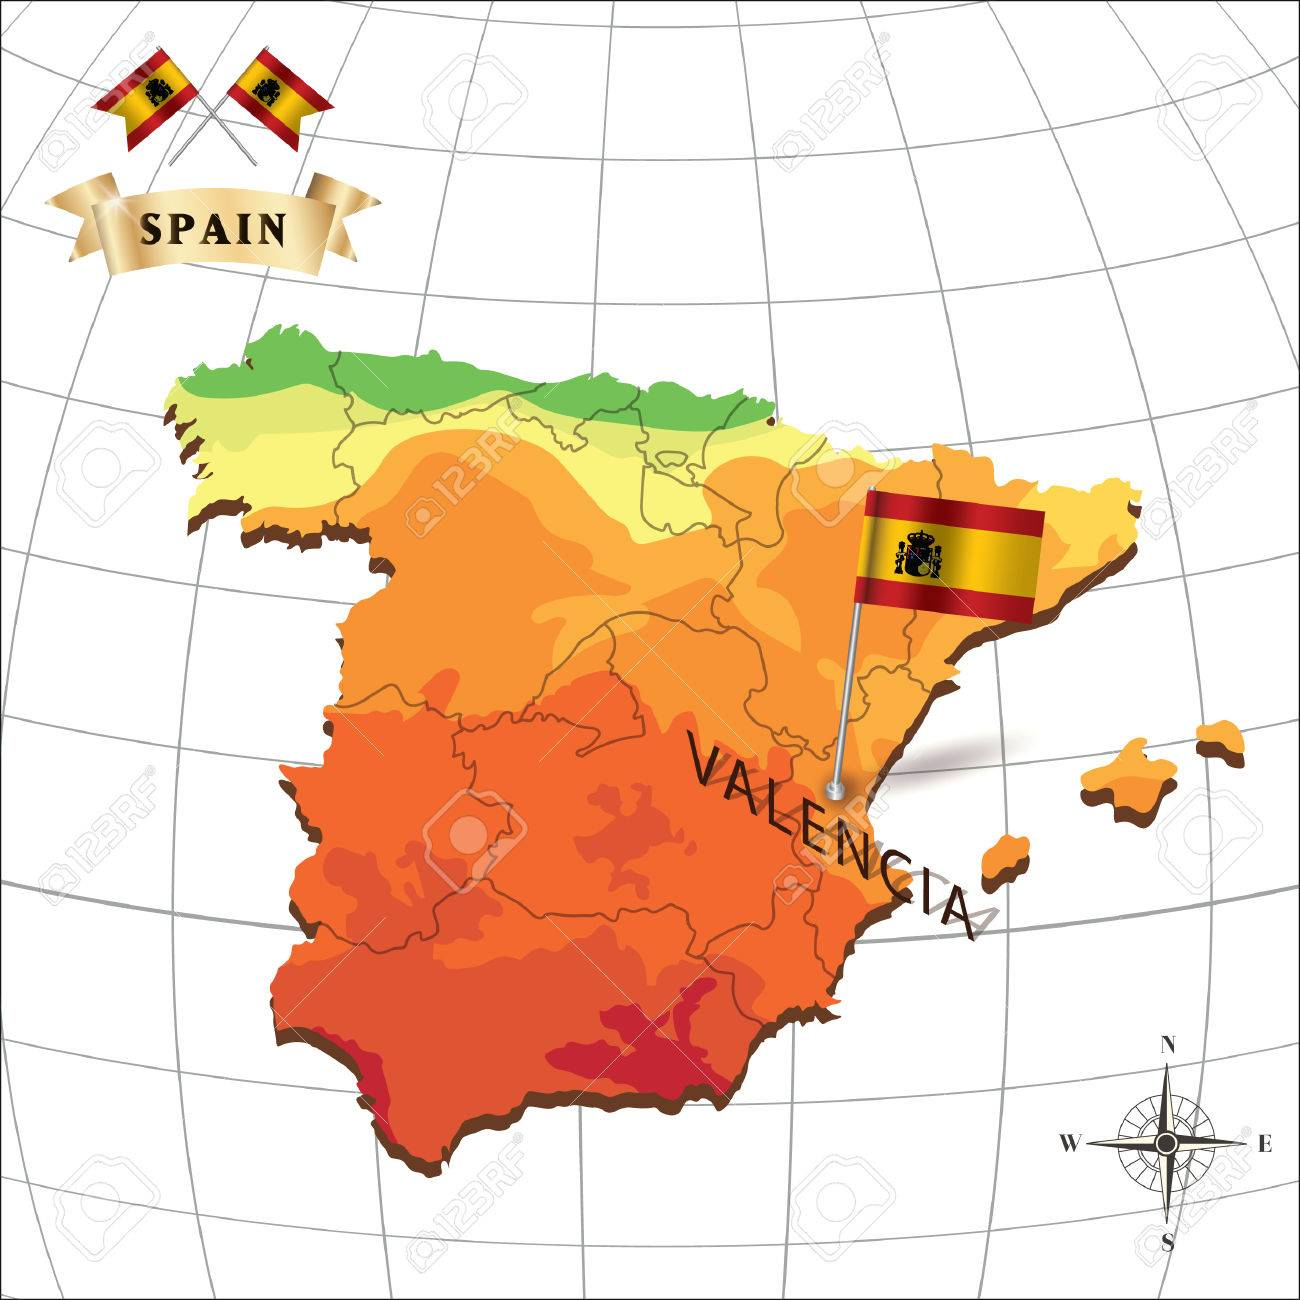 Valencia Map Of Spain.Map Of Spain With Valencia